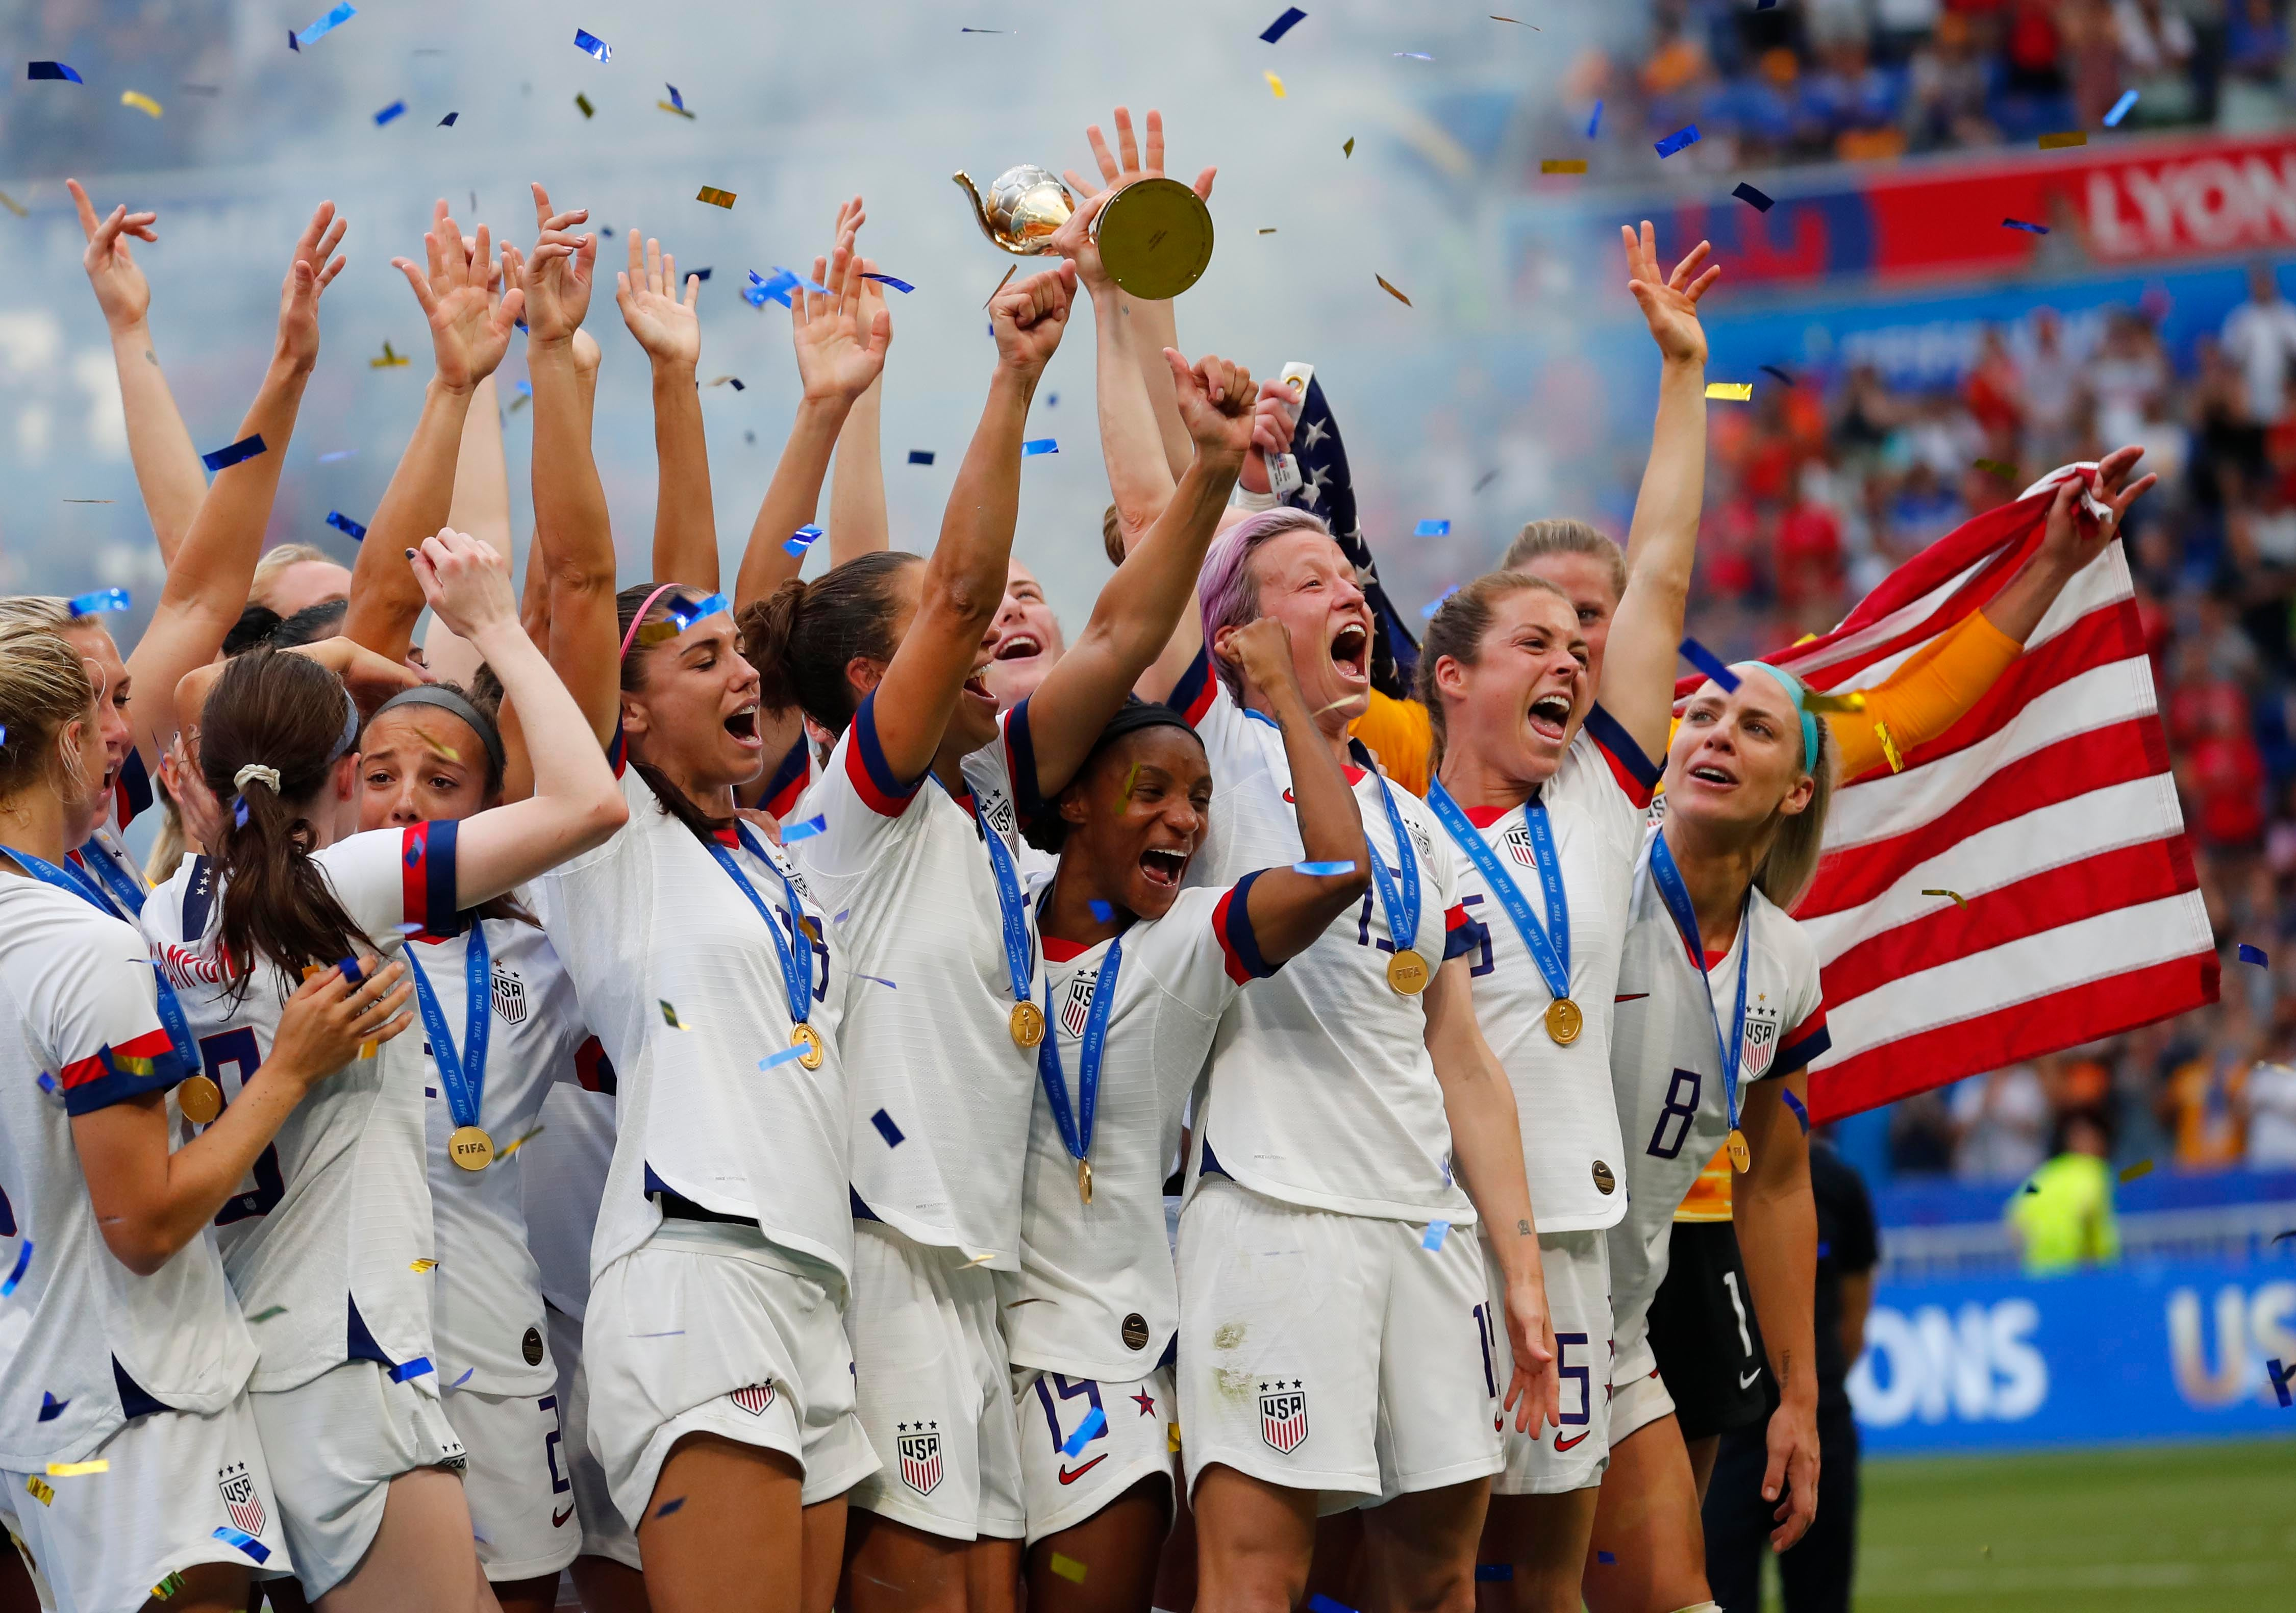 More Info for Tickets On Sale Now for 2020 Concacaf Women's Olympic Qualifying Tournament, with Semifinal and Final Held at Dignity Health Sports Park